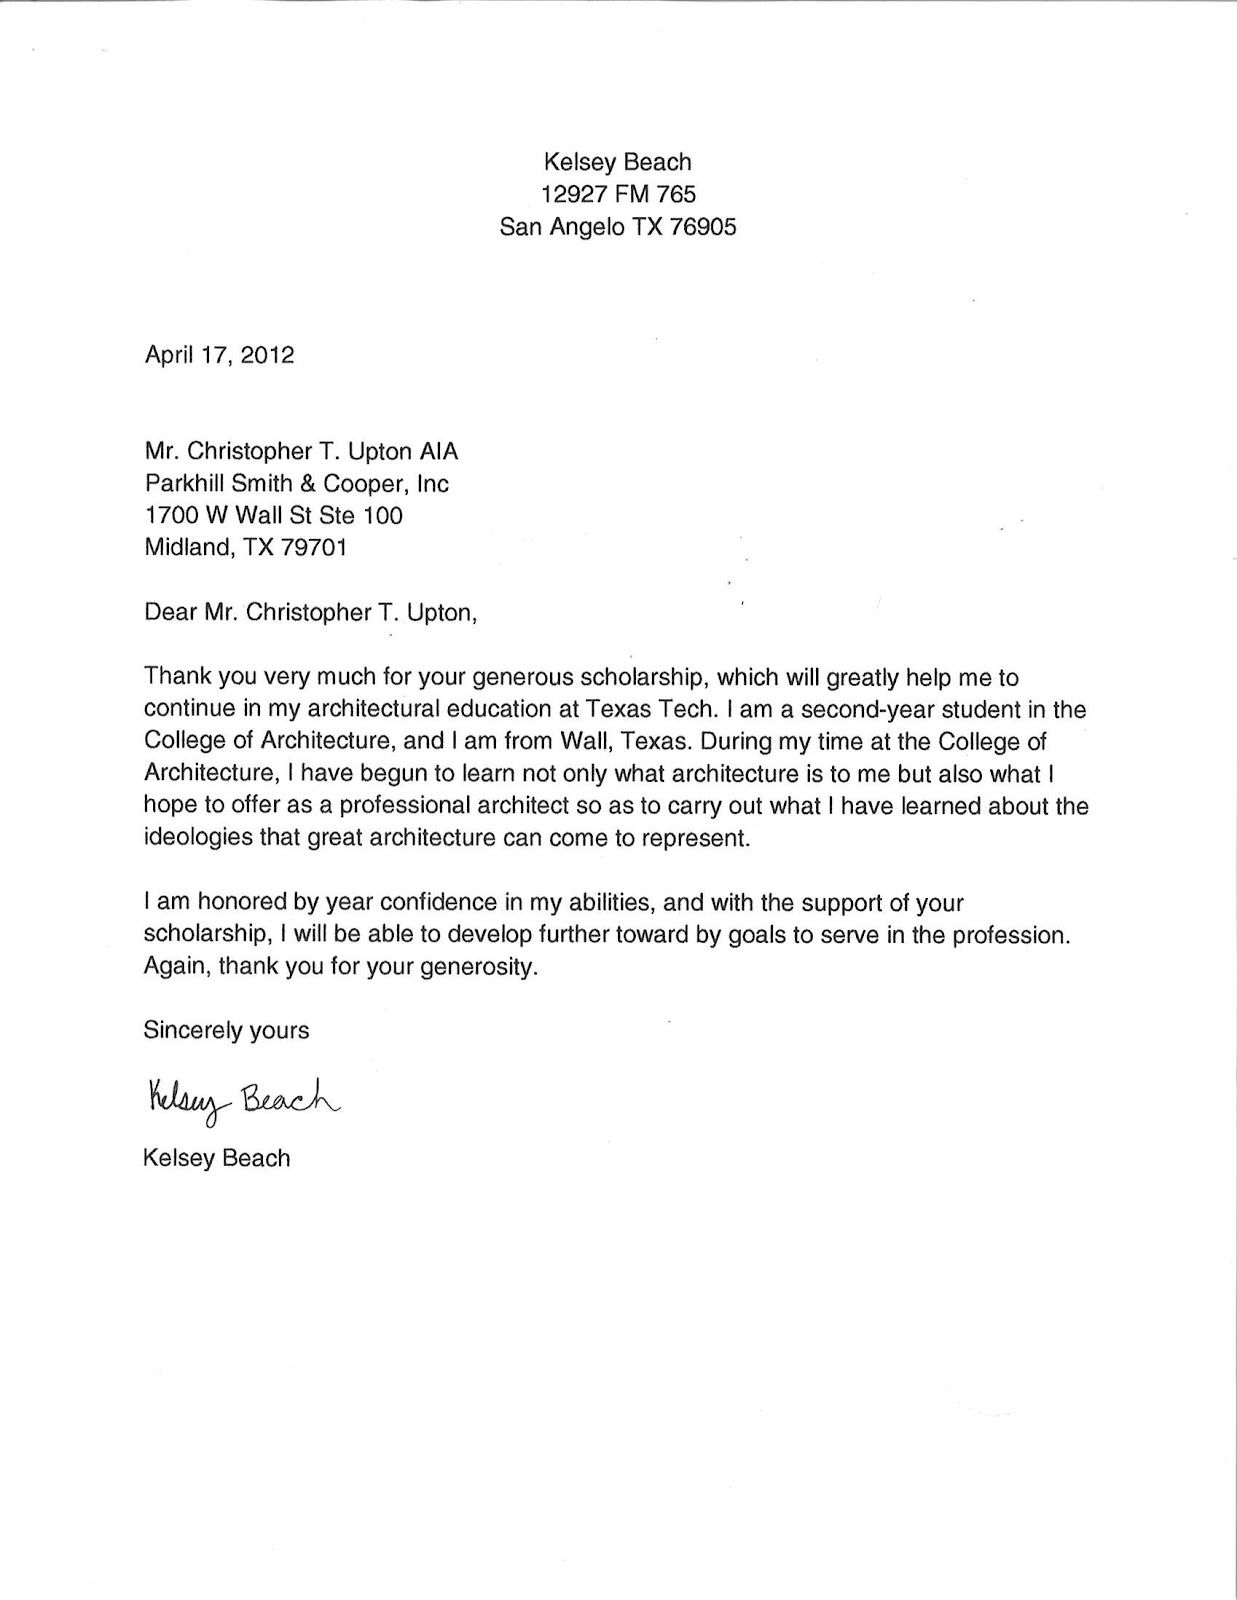 scholarships thank you letter